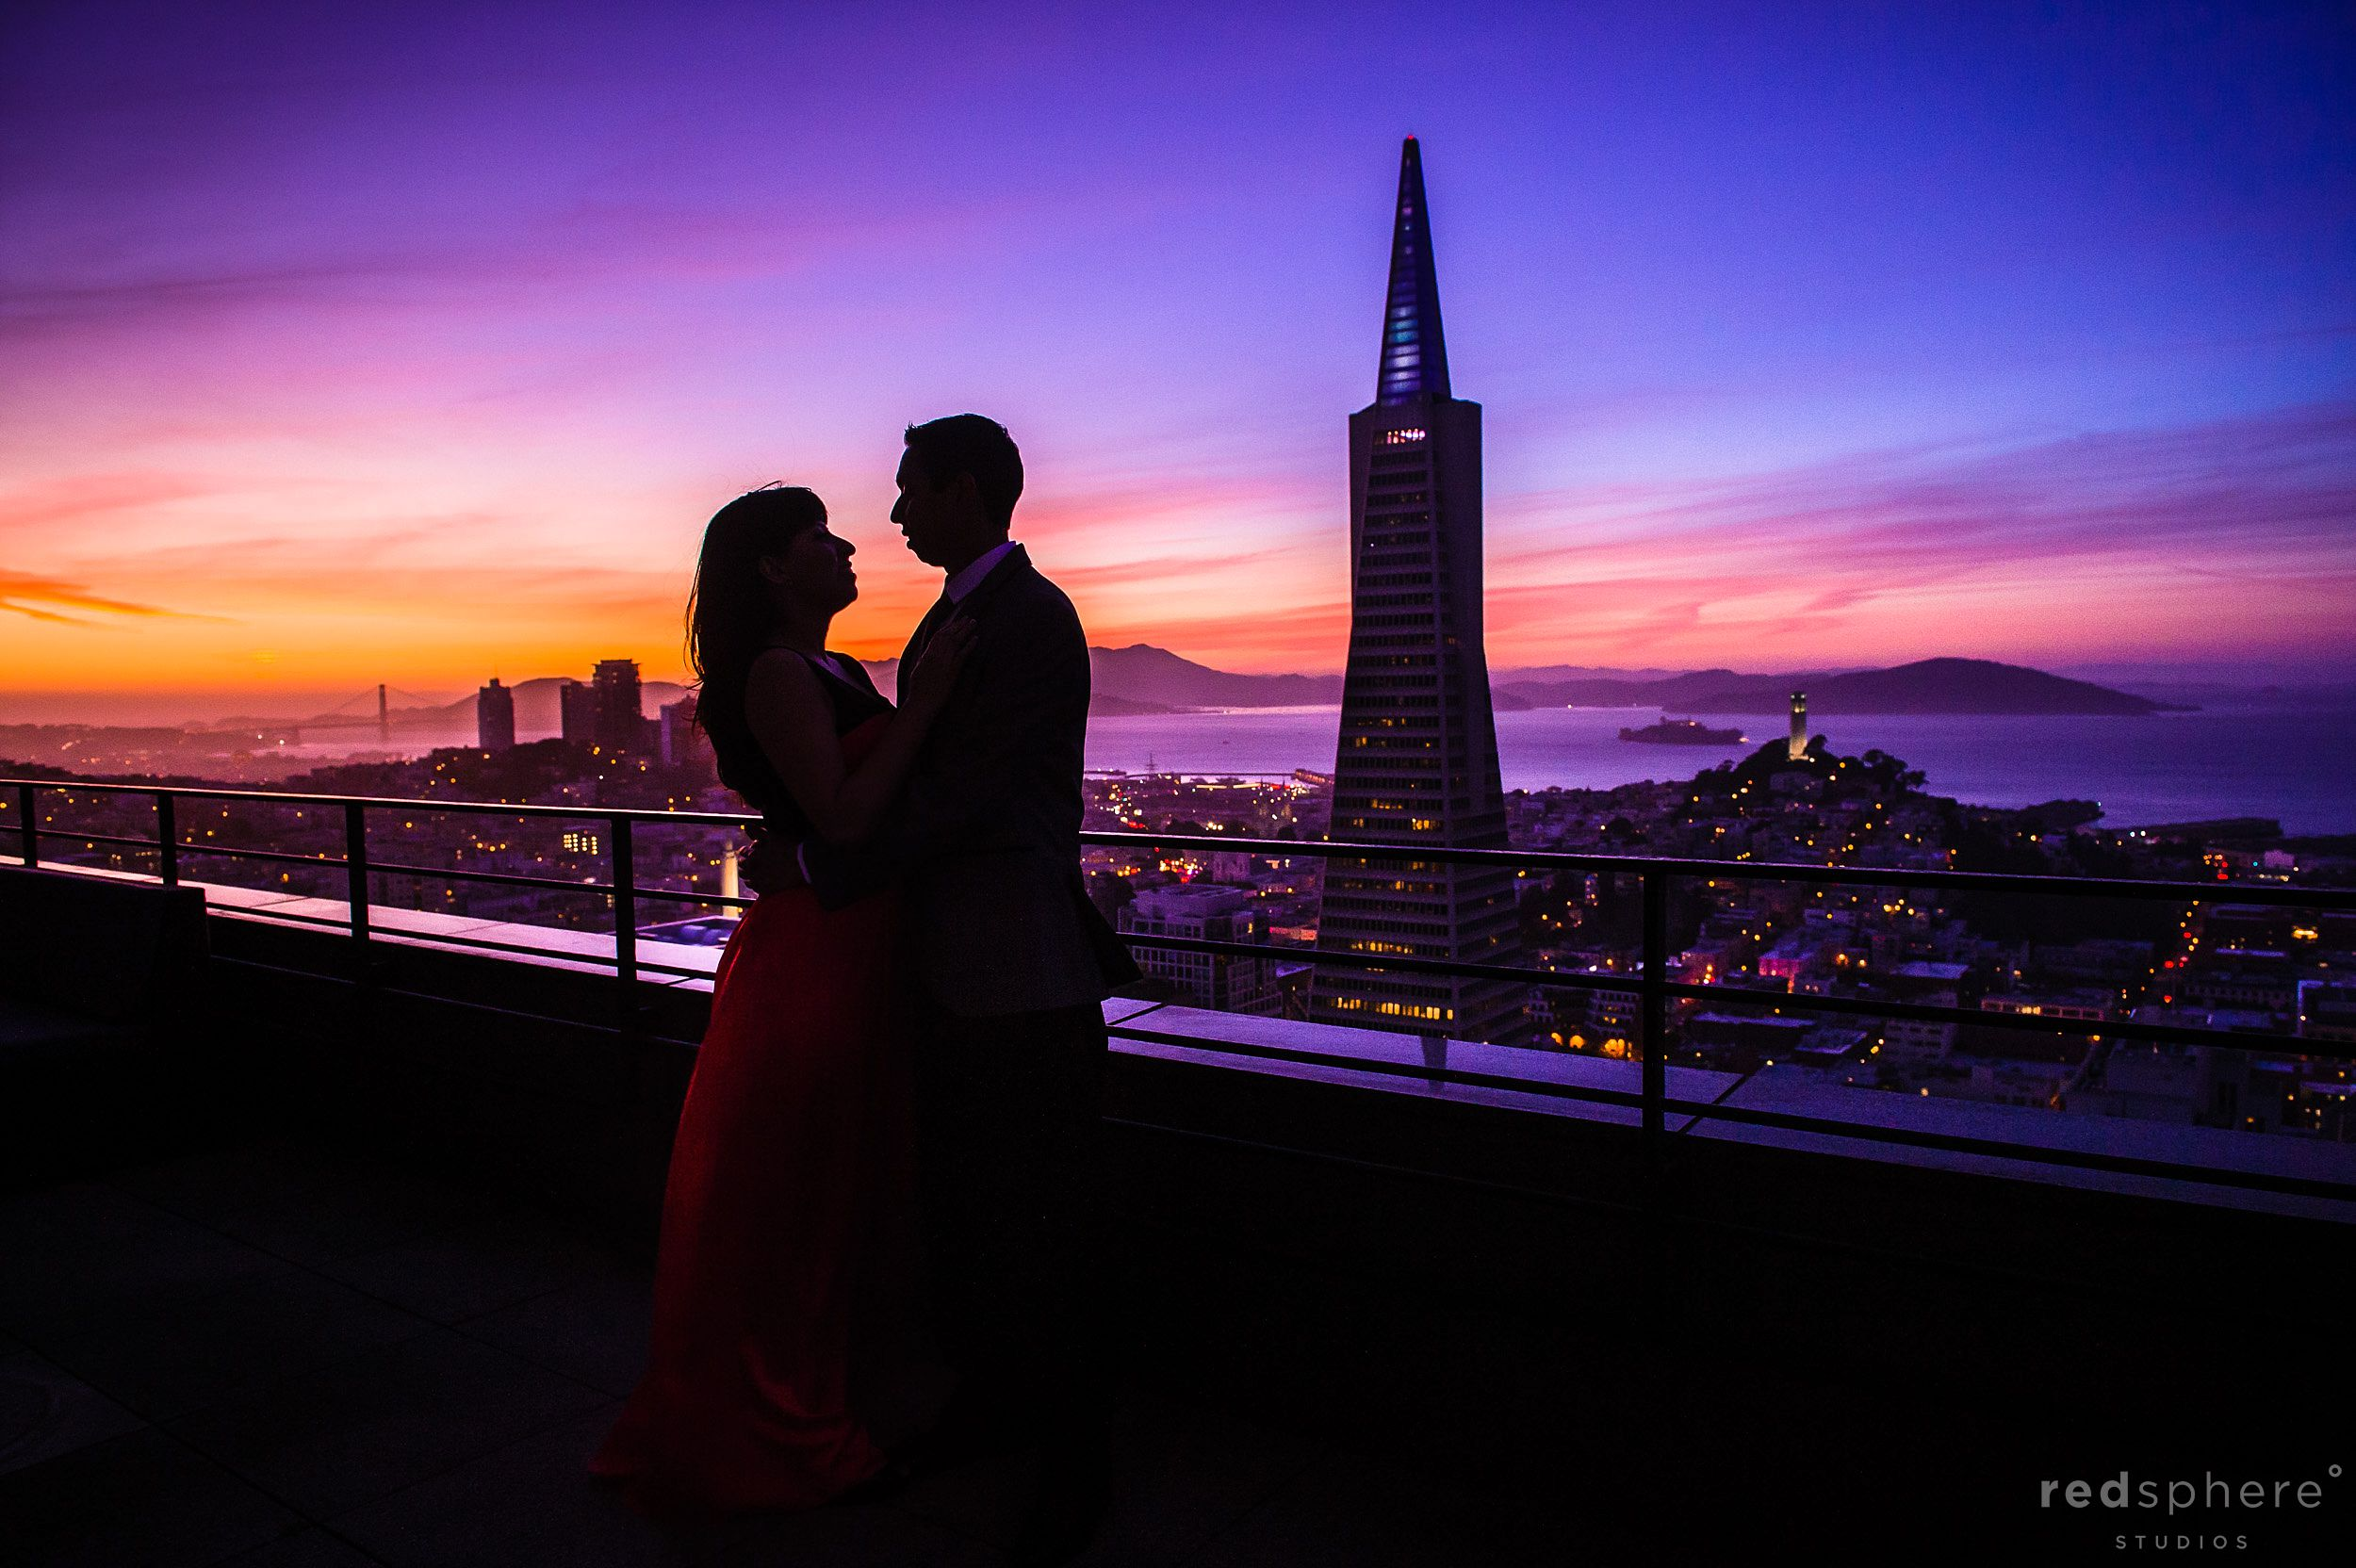 Couple and Transamerica Pyramid Silhouette on San Francisco Mandarin Oriental Hotel Balcony